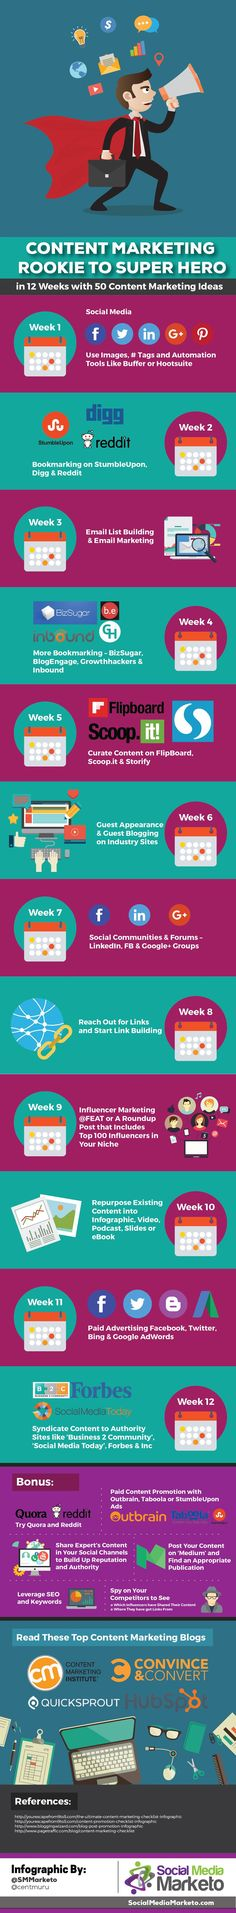 50 Content Marketing Ideas to go from Rookie to Super Hero #Infographic via @angela4design